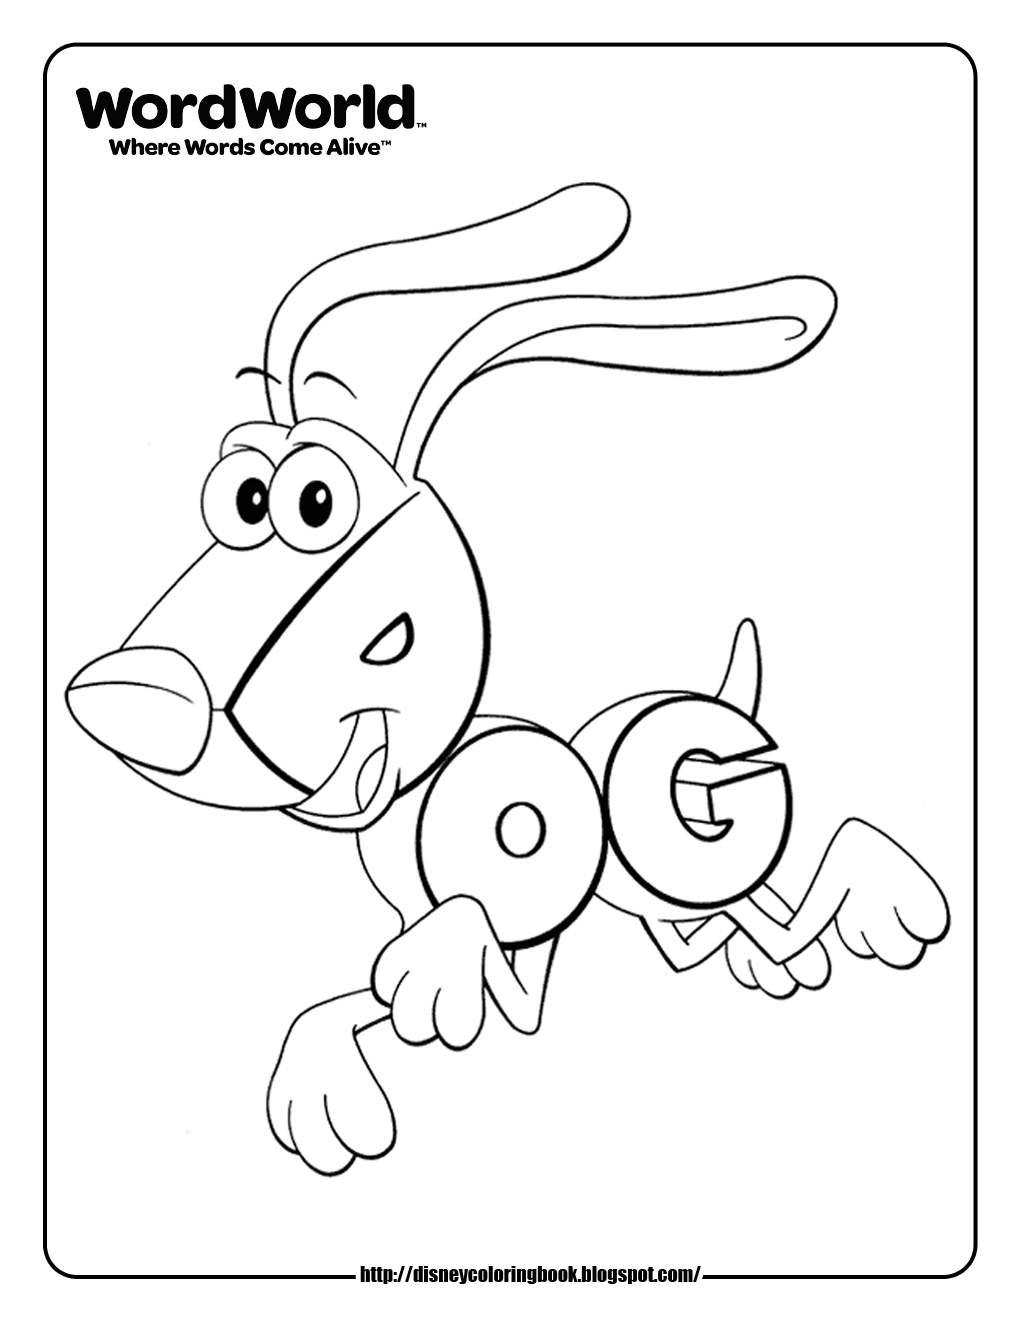 1 year old coloring pages at getdrawings com free for personal use